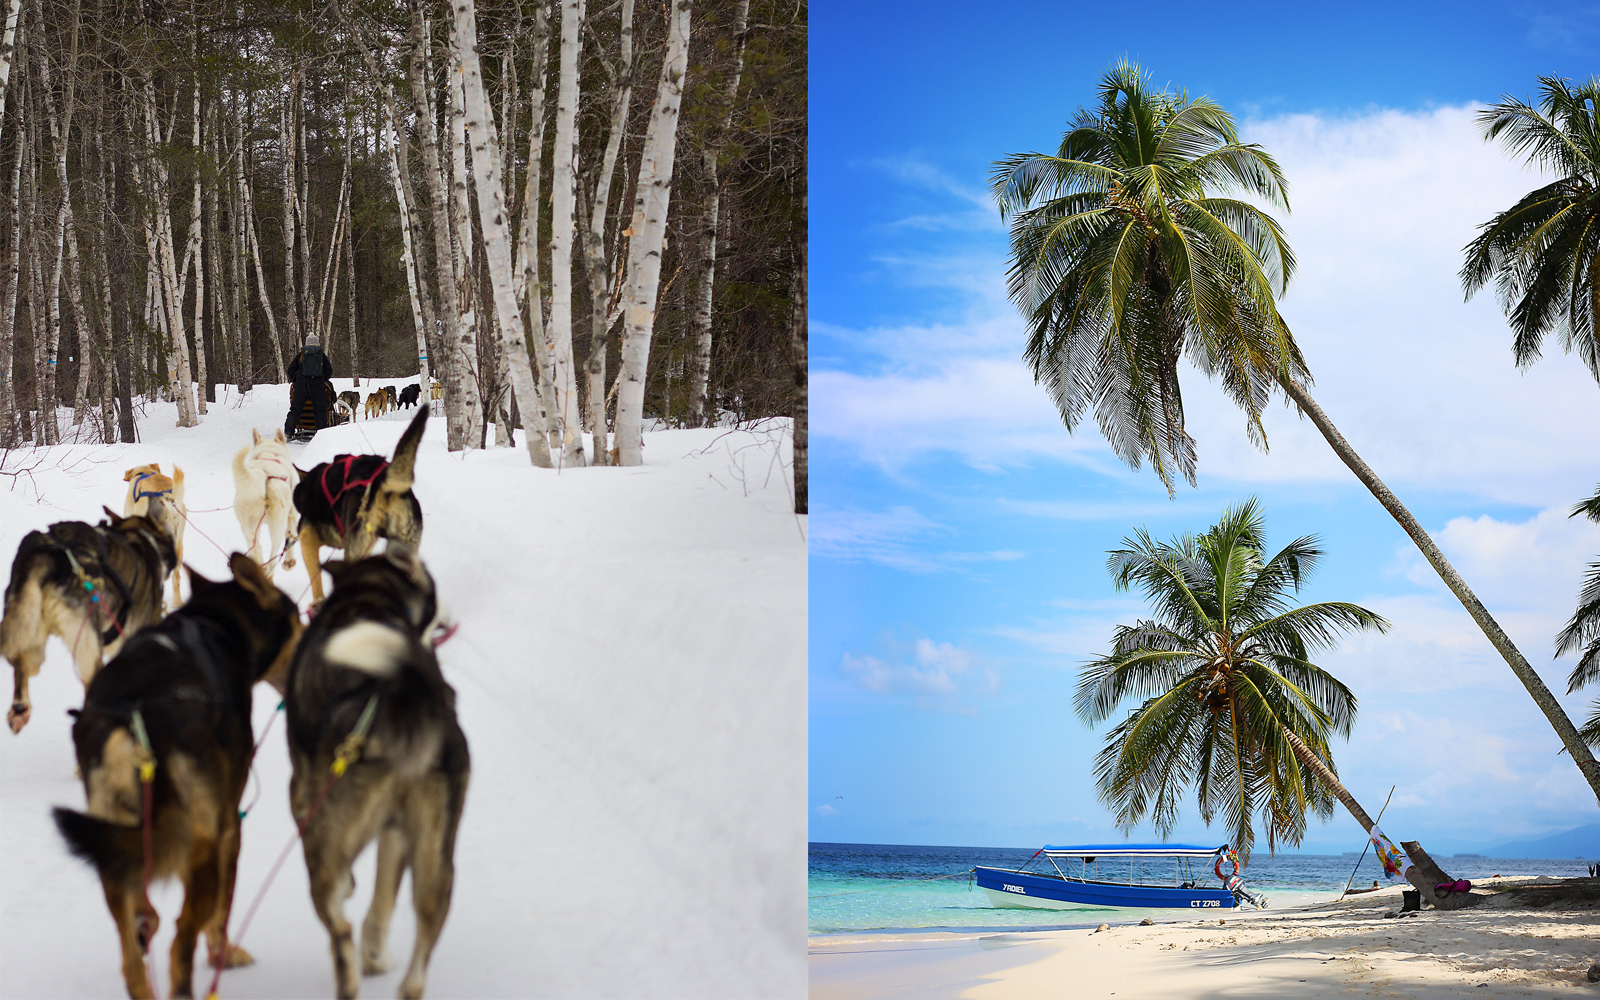 Dogsledding in Quebec and a pristine beach in Panama